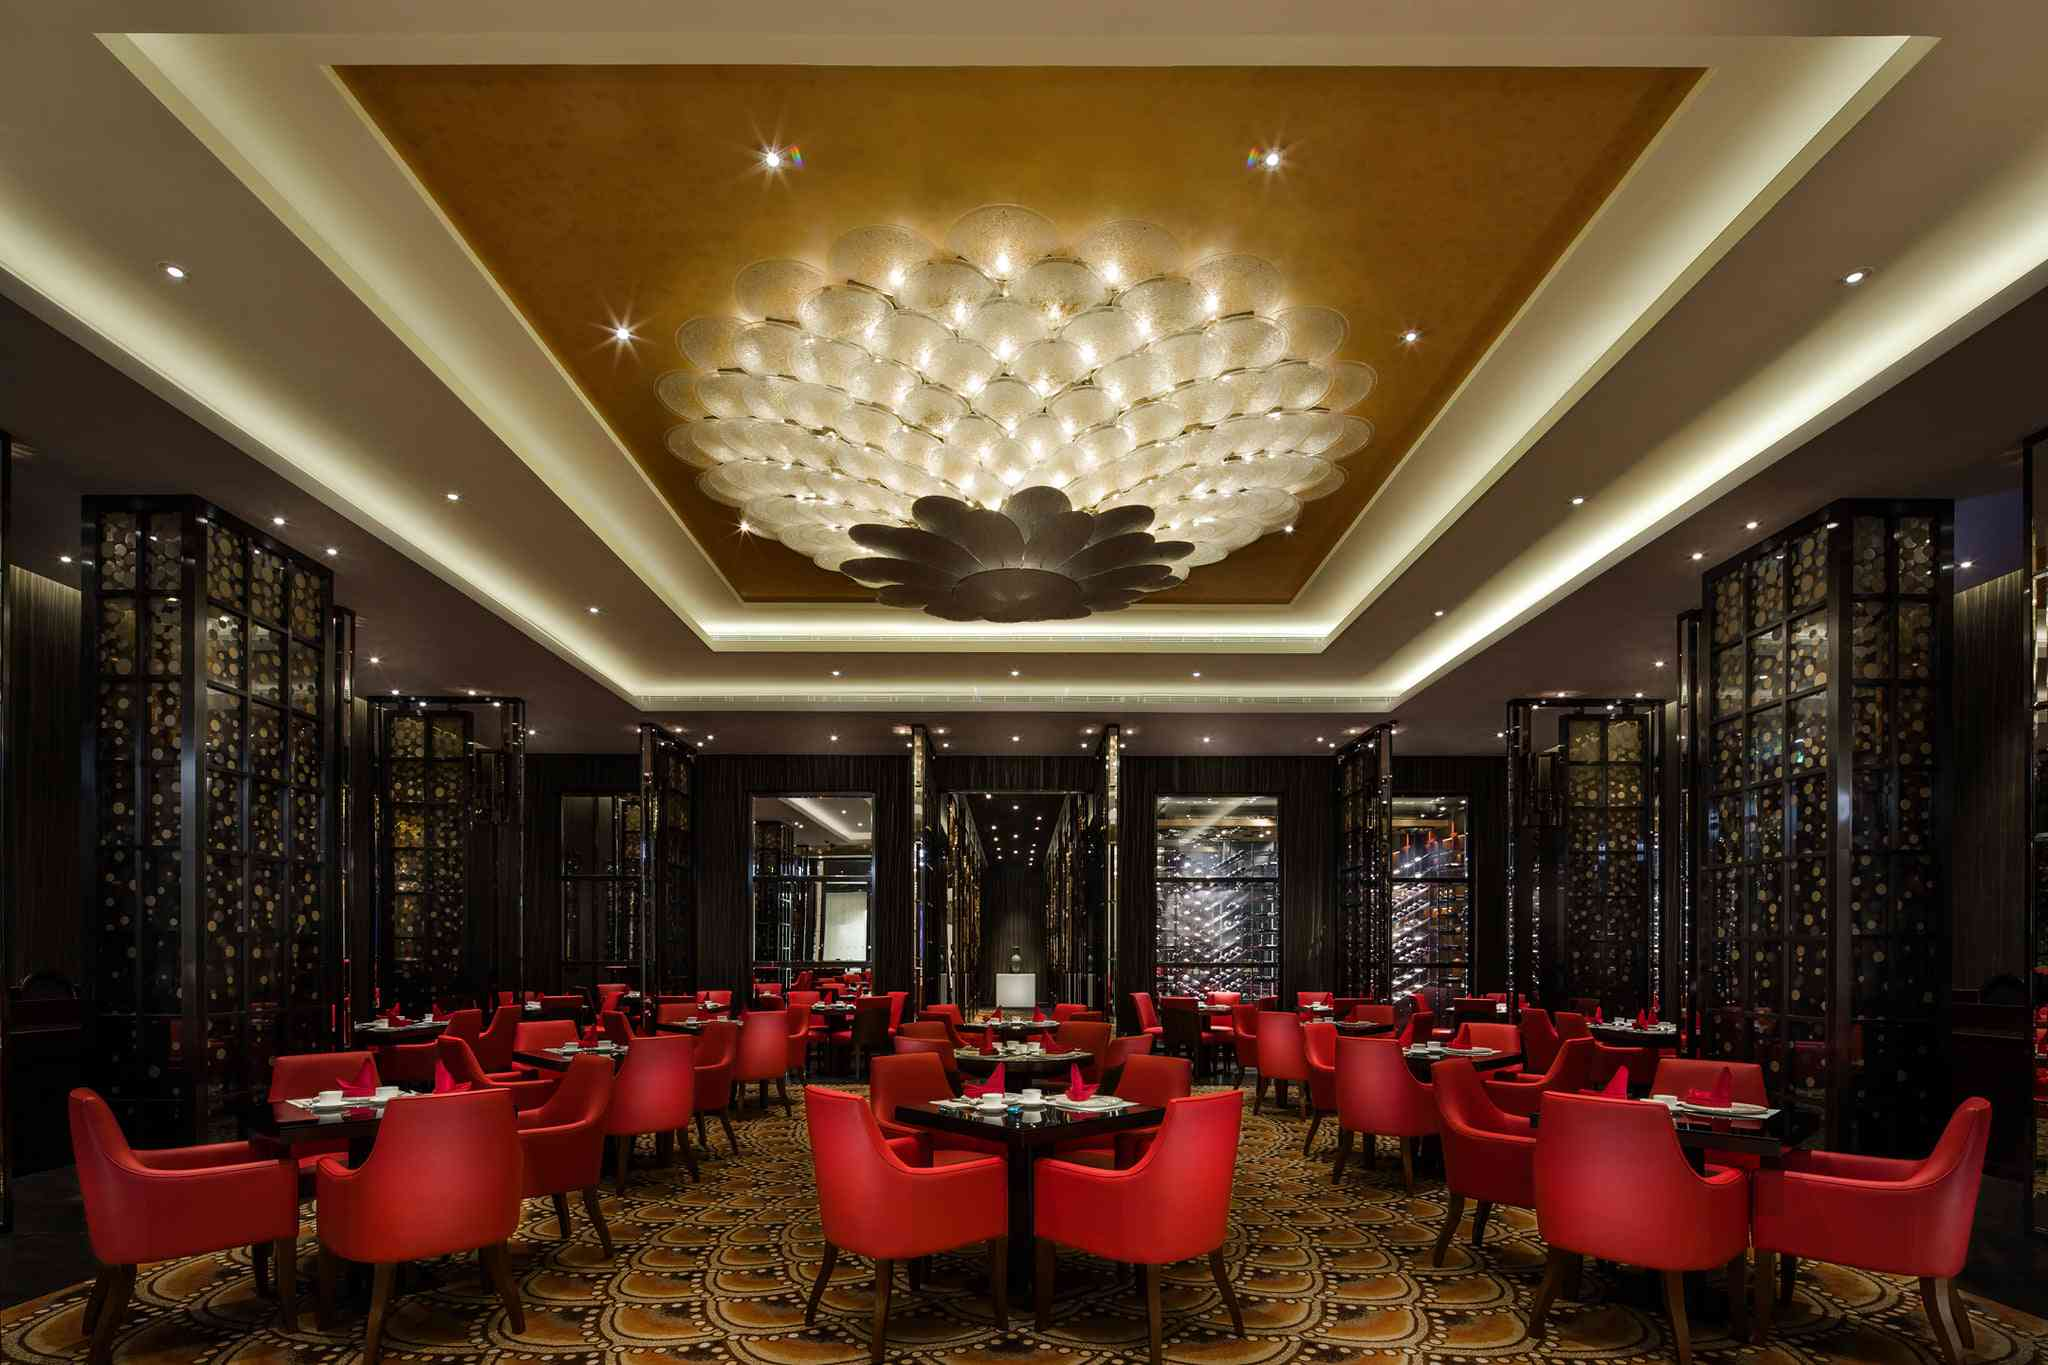 Dining room at the Parisina Macao with red chairs and black wall decorations